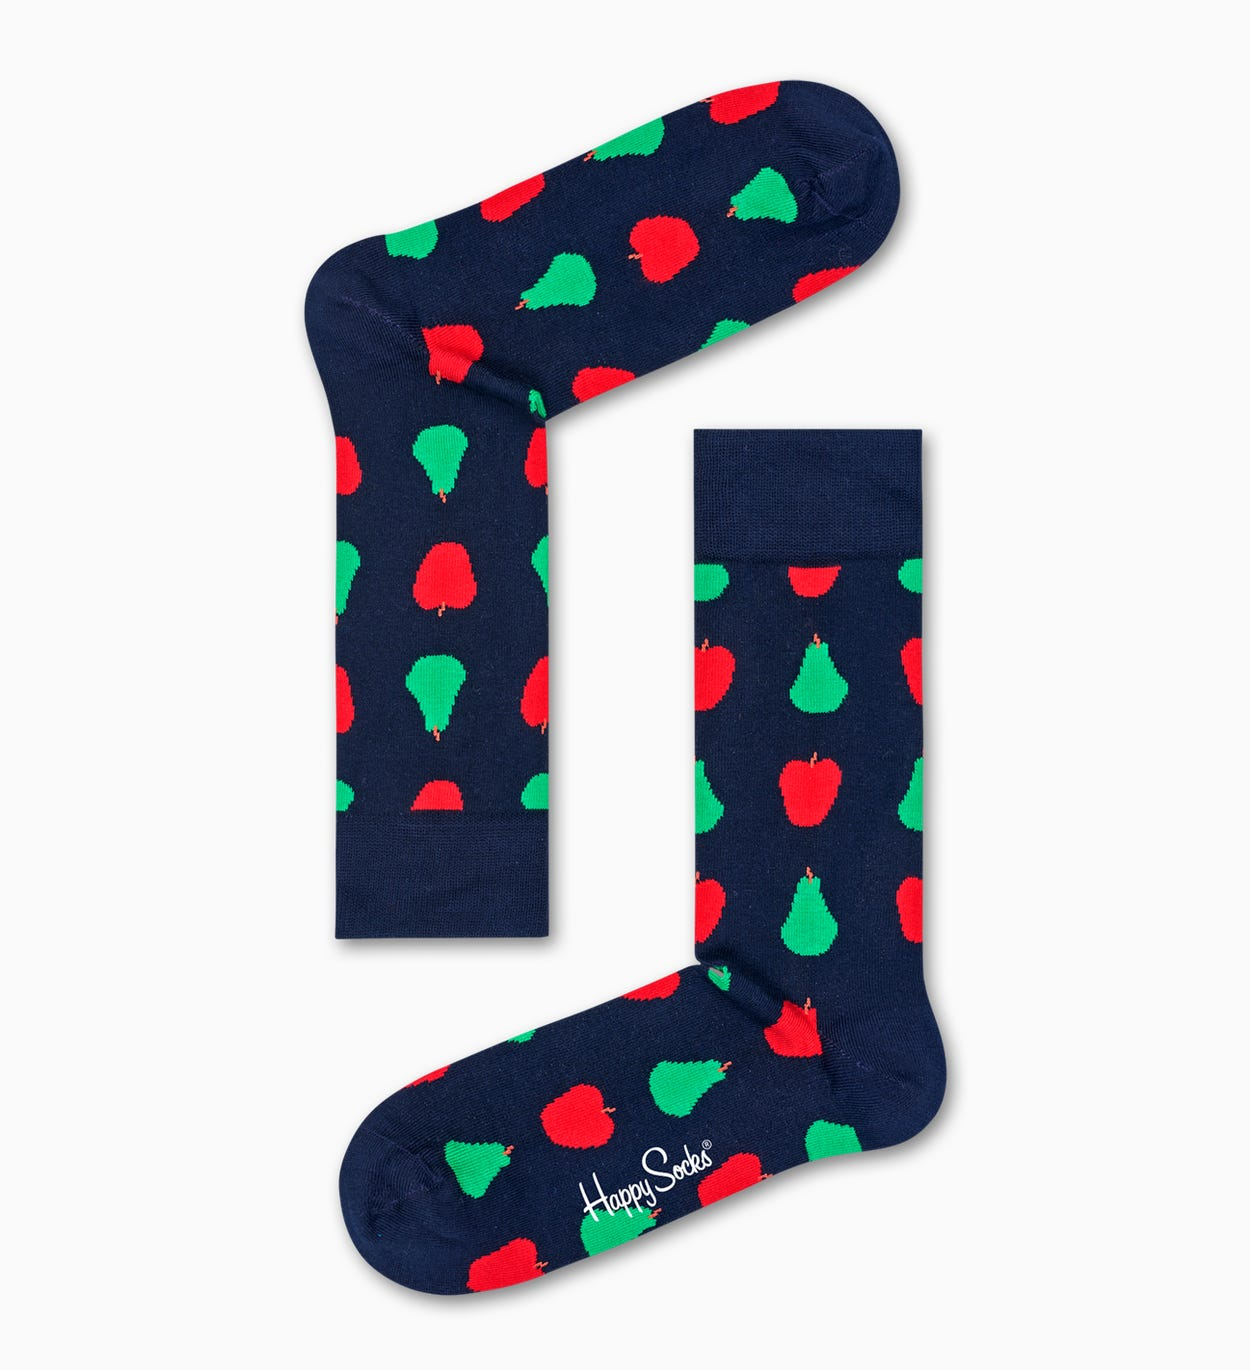 Picknick 3-er Pack: Carrot, Hotdog und Fruit Socken I Happy Socks